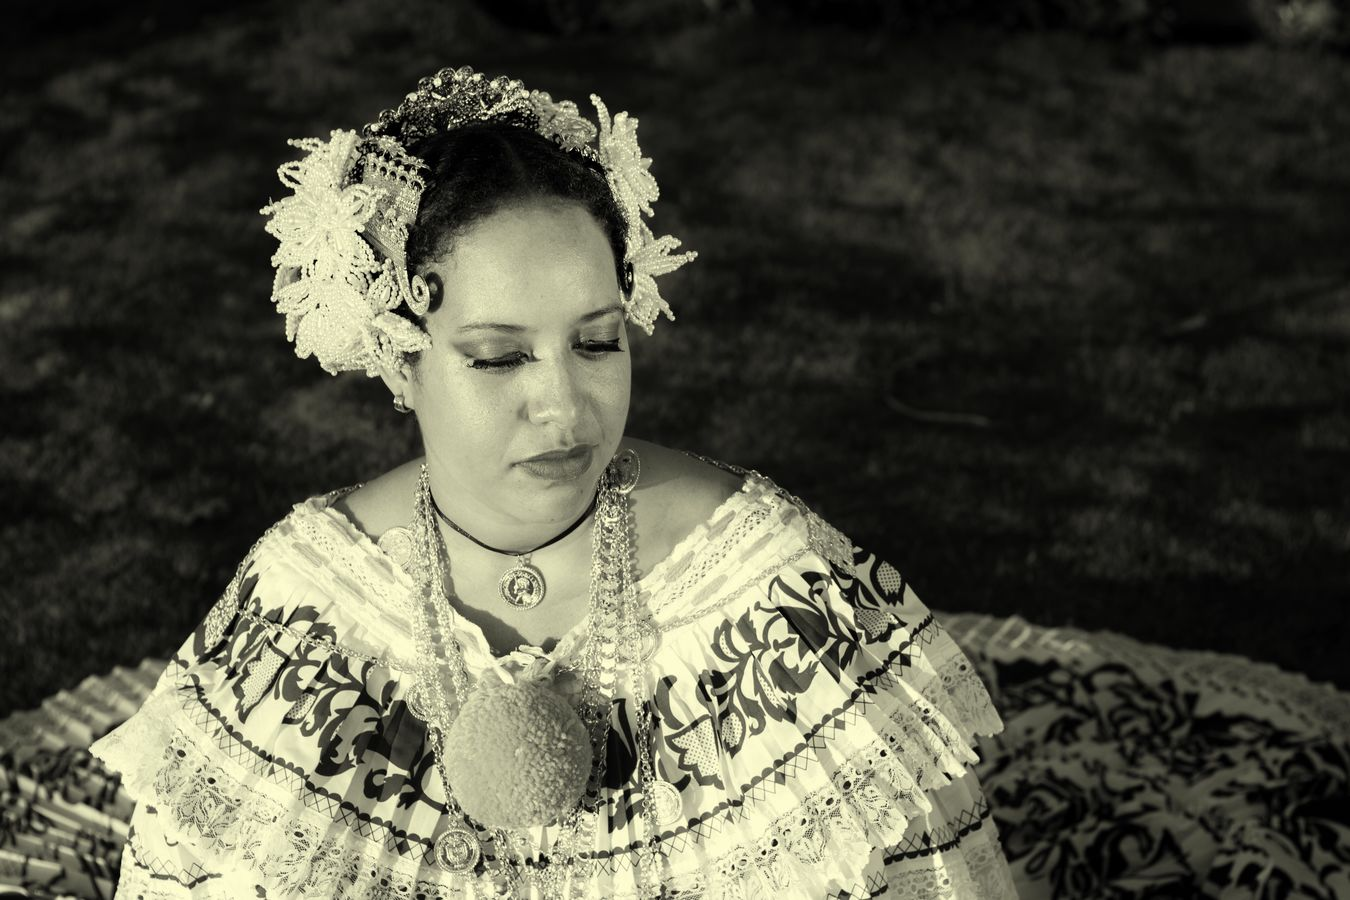 Pollera Panamá 🇵🇦 Person History Outdoors Pollera Falda Larga Tembleque Tembleques Dance